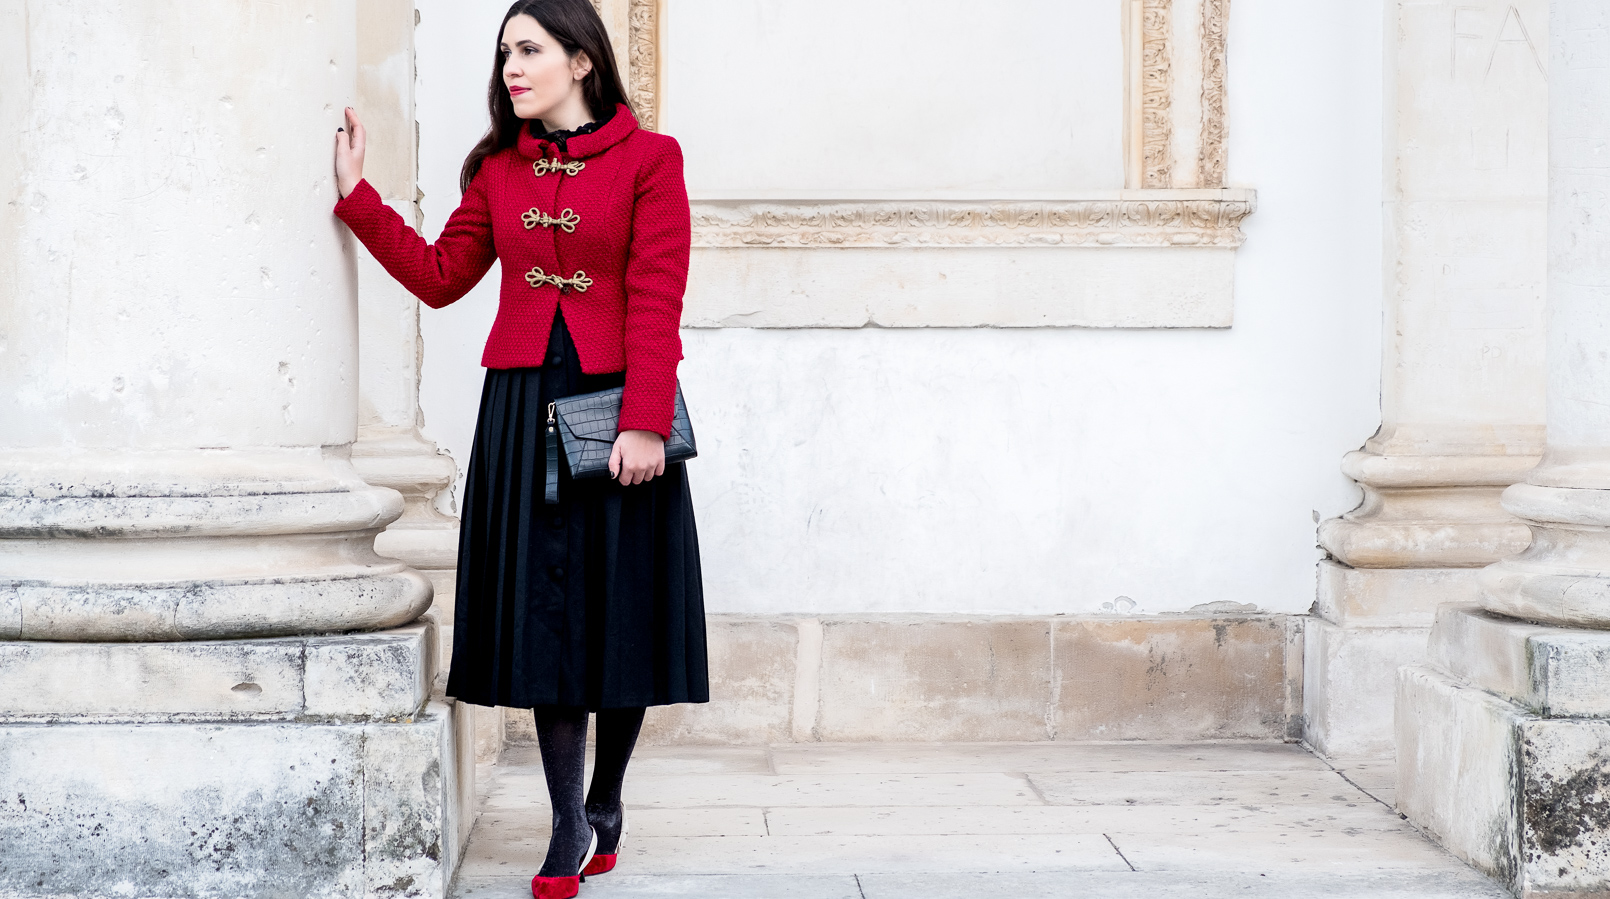 Le Fashionaire Christmas classic outfit red sparkling wool gold fastenings lanidor jacket black midi skirt front buttons old croco black parfois clutch 6560F EN